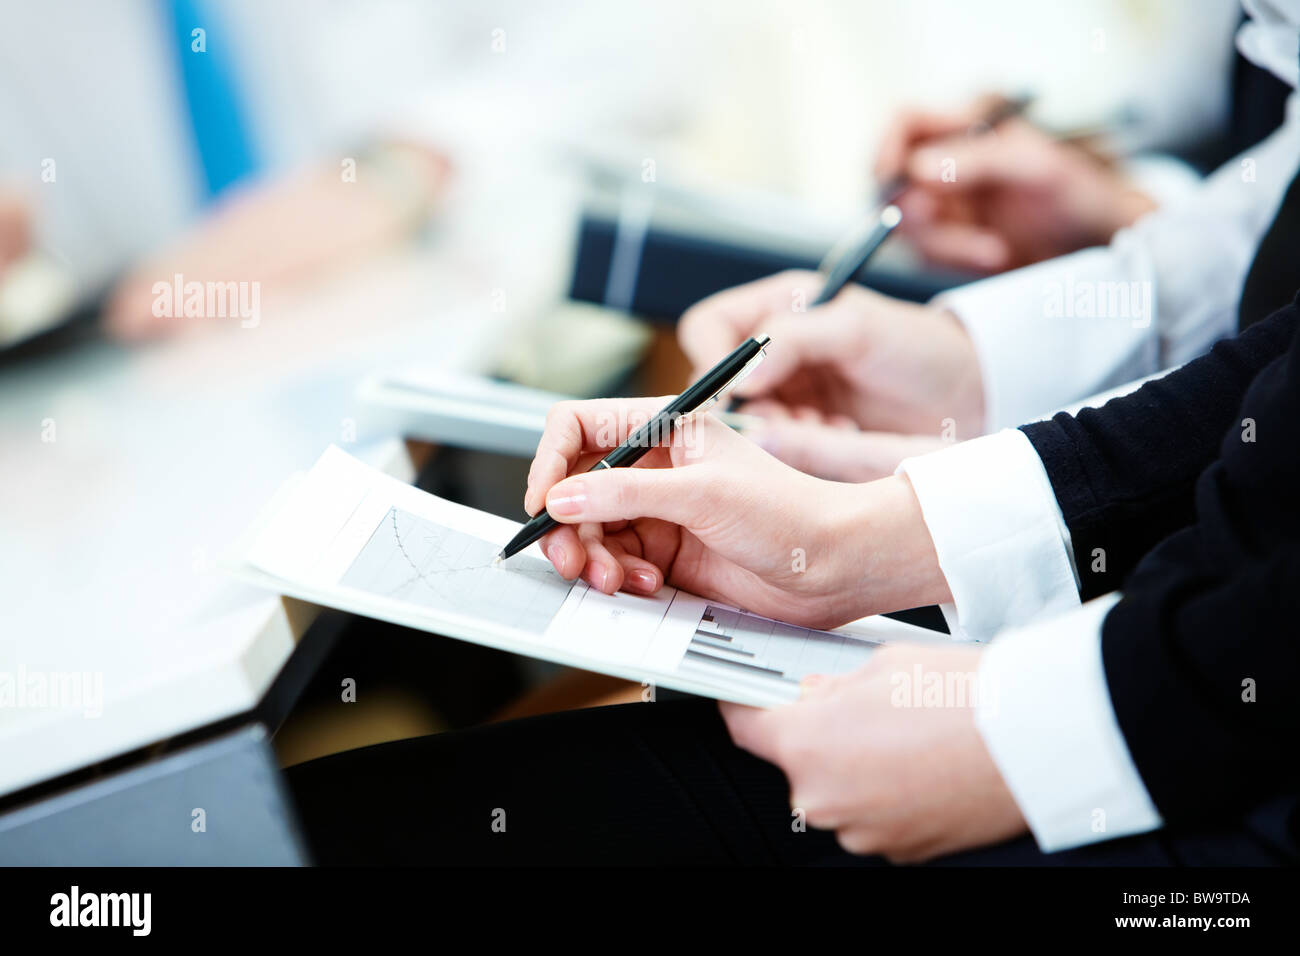 Close-up of business person hands with document writing at lecture - Stock Image